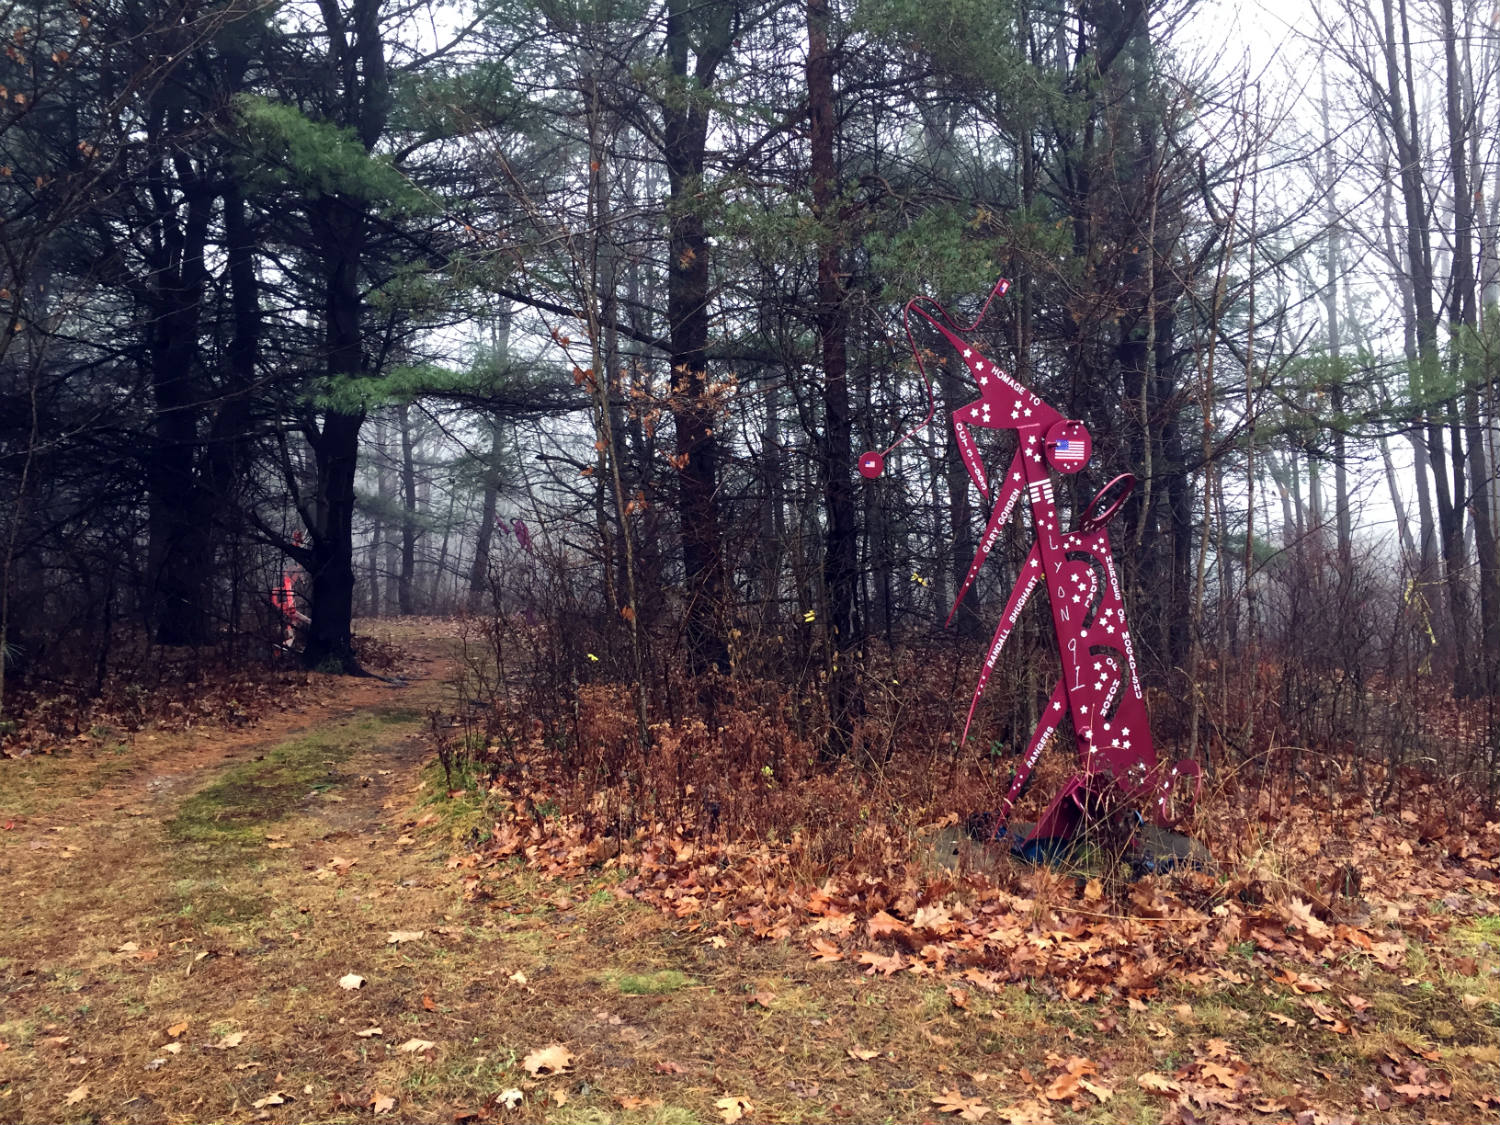 The C Lyon Sculpture Park in Horseheads, New York Military Sculpture